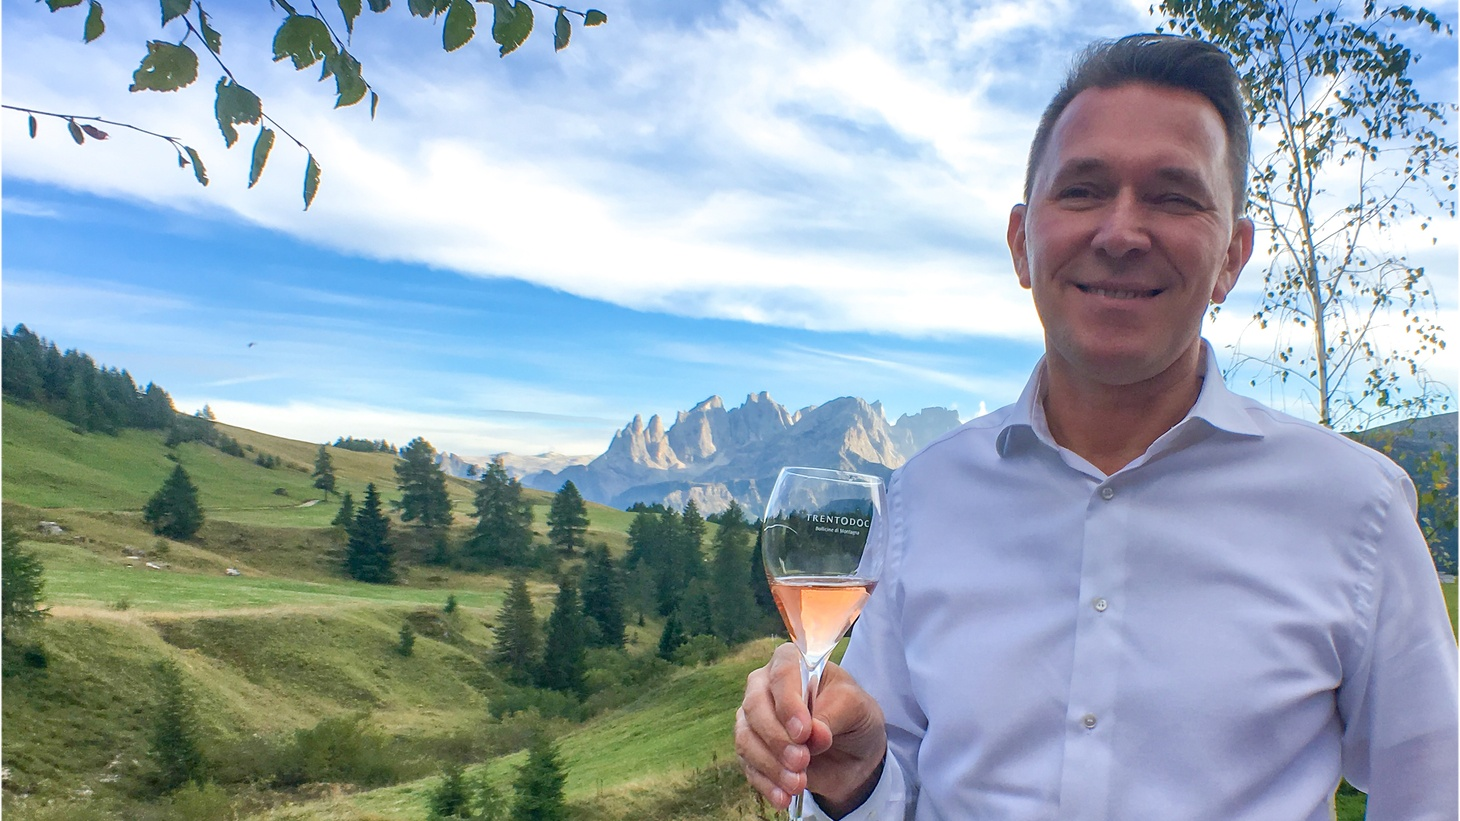 Salute! Roberto Anesi, named the 2017 Best Sommelier of Italy, explains the long tradition and unique flavors behind Italy's Trentodoc sparkling wine on this week's show.